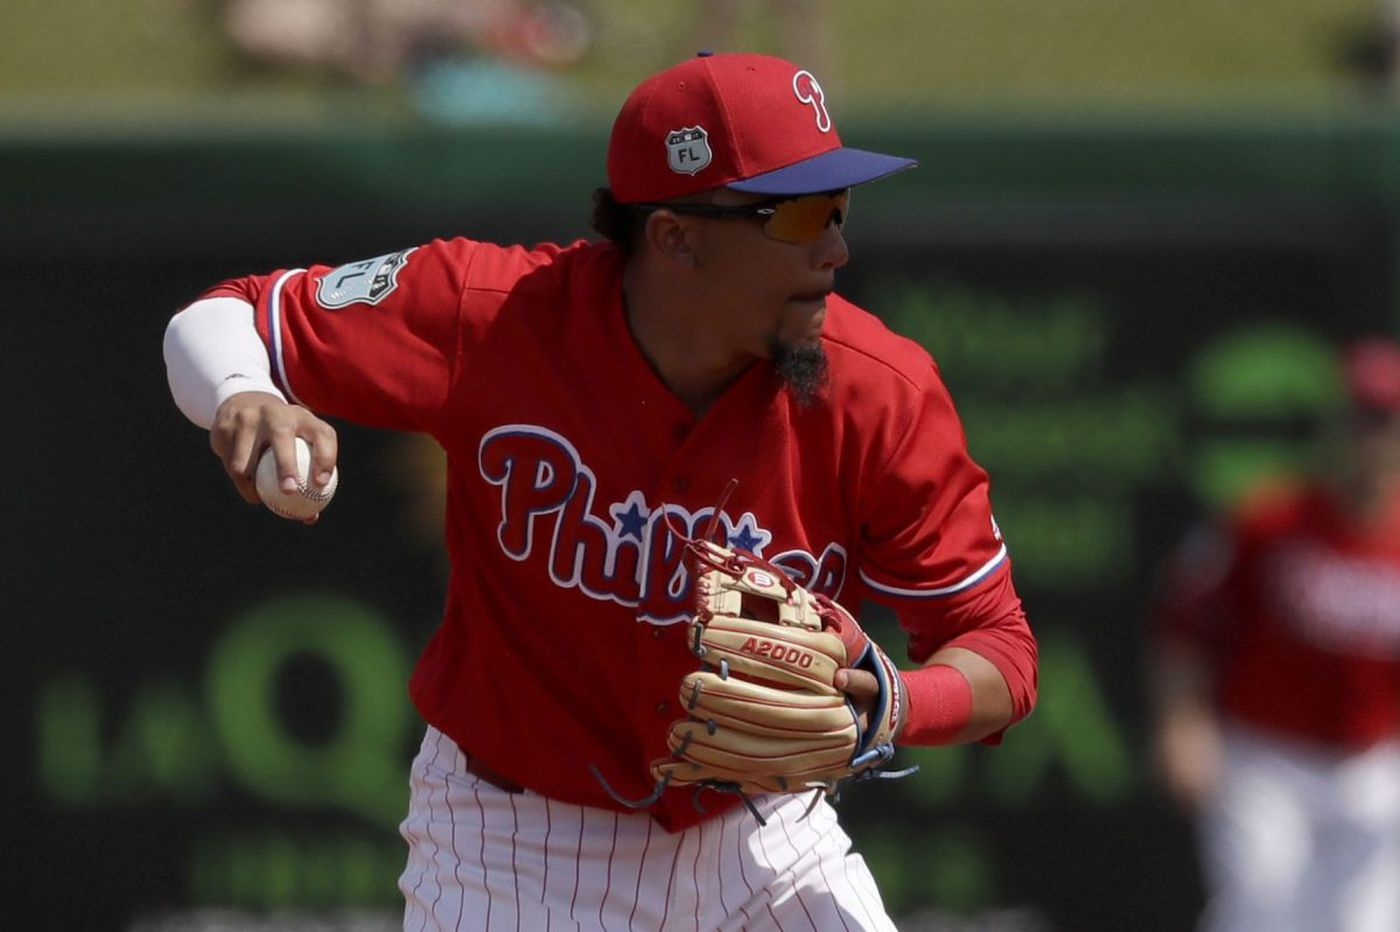 Phillies signal J.P. Crawford's soon arrival with Freddy Galvis move to center field